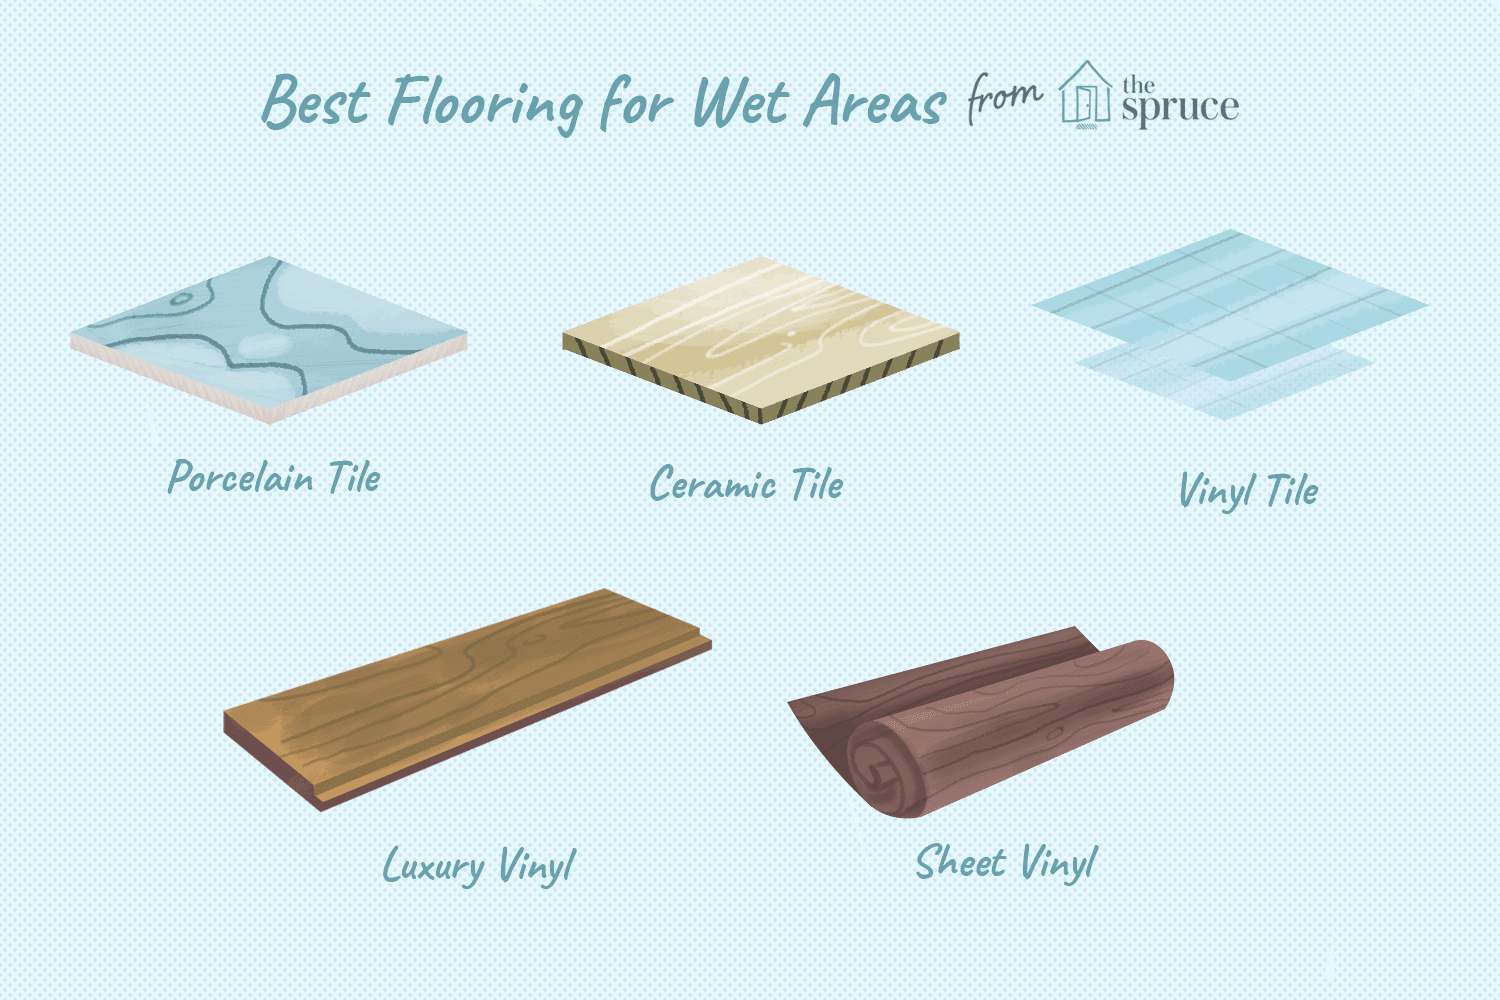 Best Flooring For Wet Areas